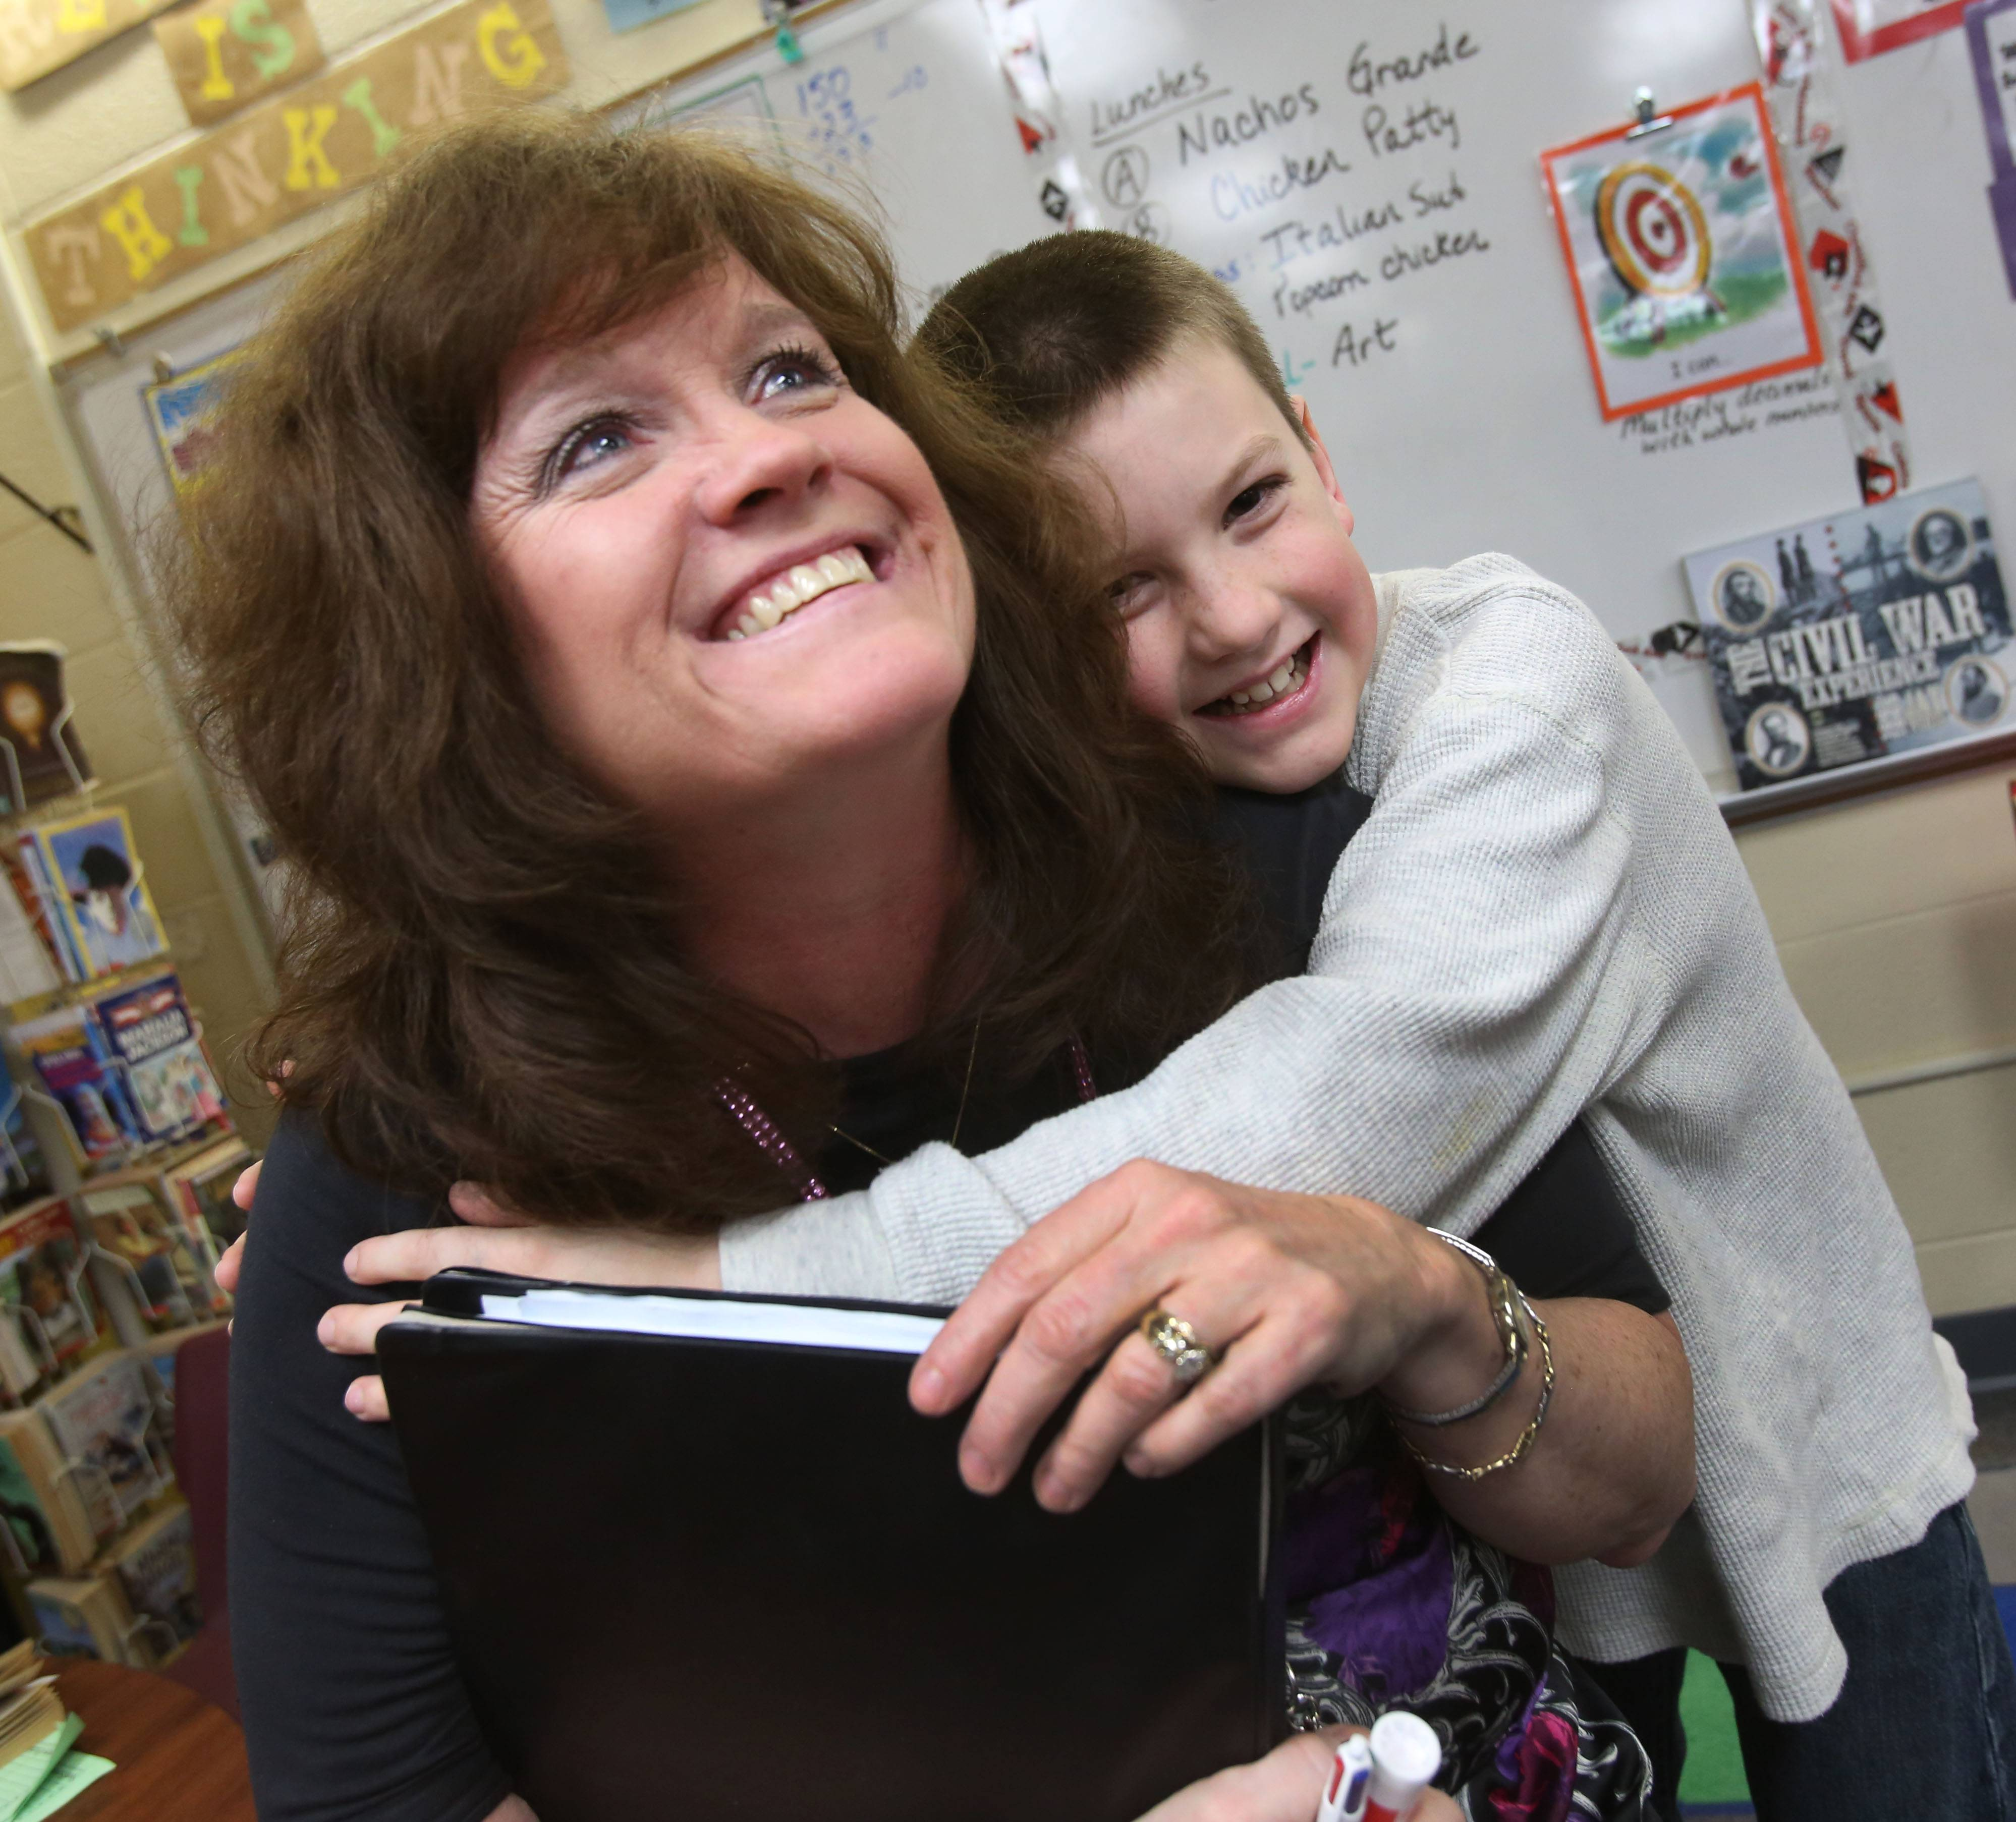 Naperville teacher knows what makes students tick